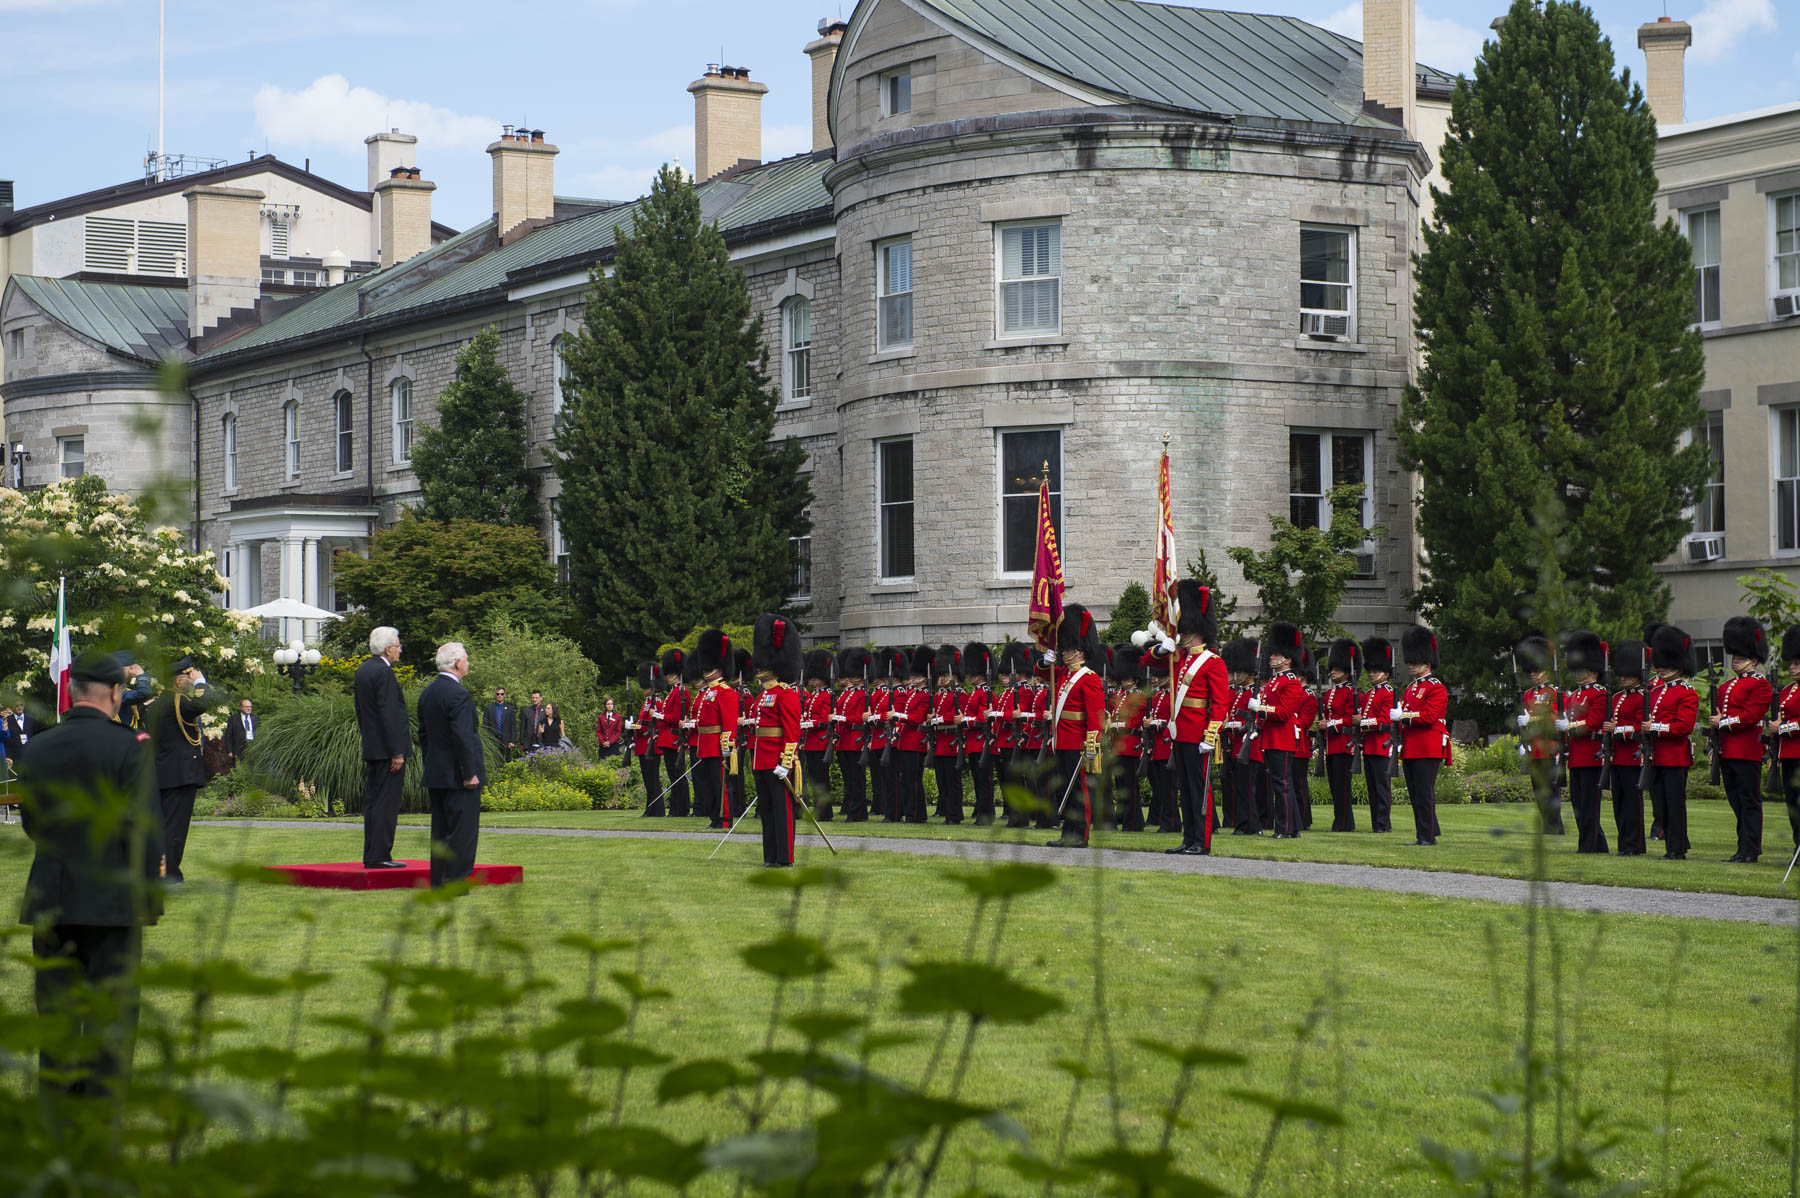 The ceremony took place in the gardens of Rideau Hall.